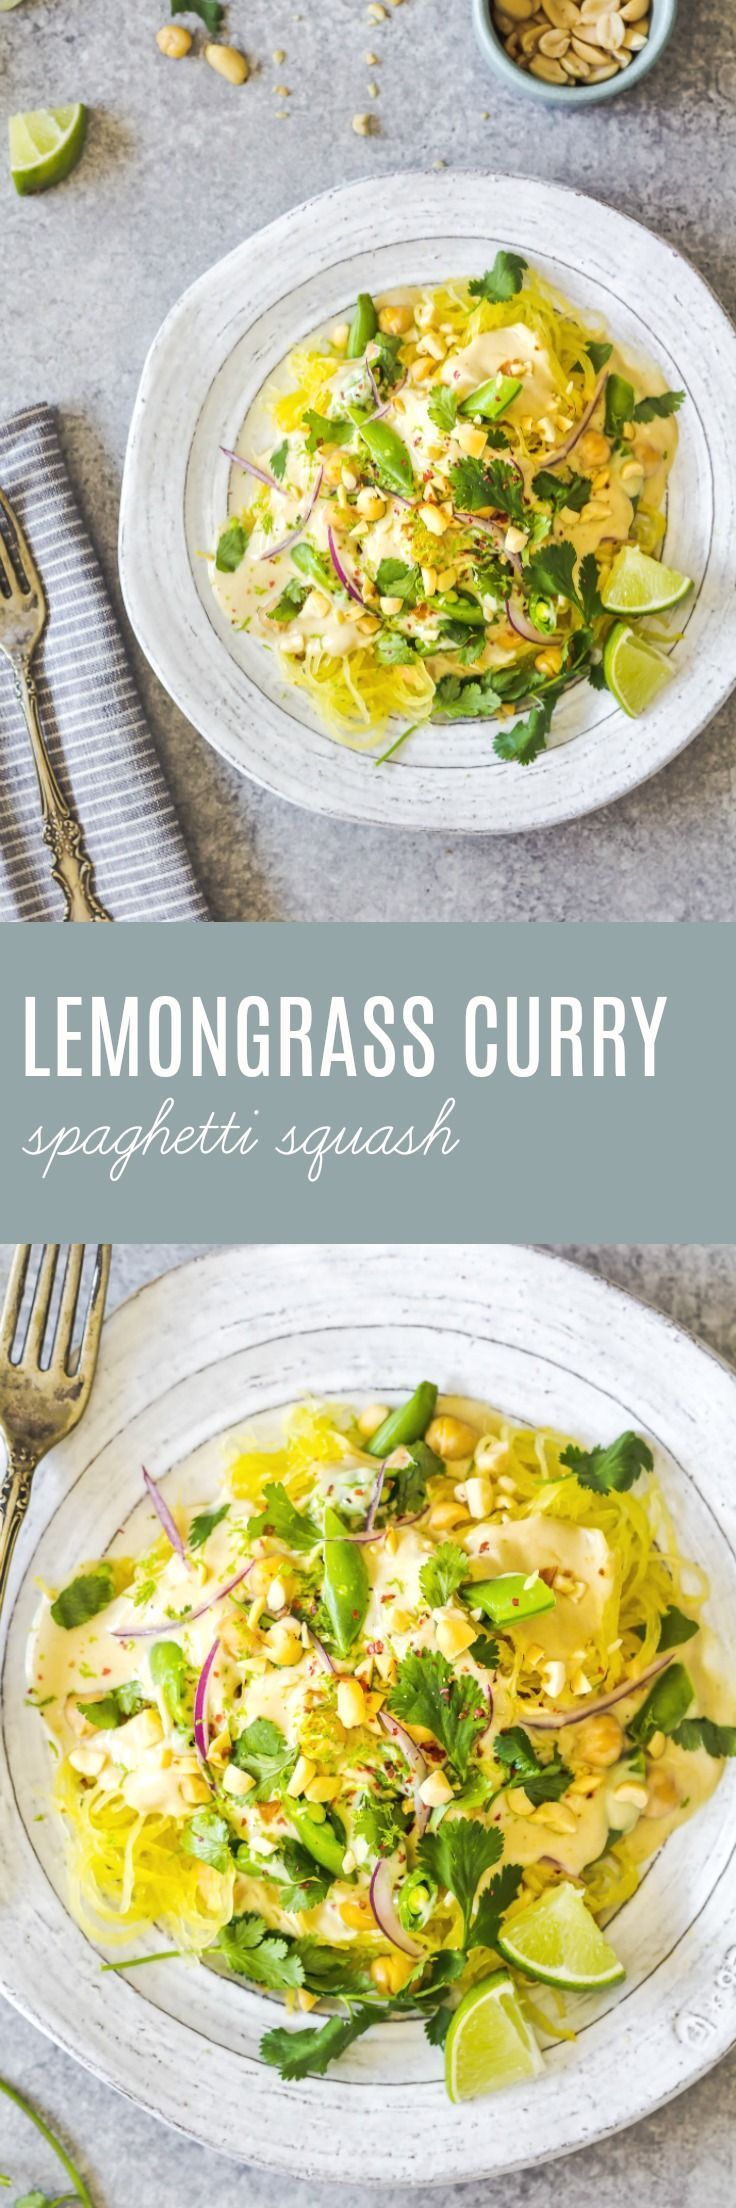 This lemongrass curry spaghetti squash is loaded with vegetables and plant based protein, and the sauce is nothing short of addictive. #spaghettisquash #lemongrass #curry #vegan #vegetarian